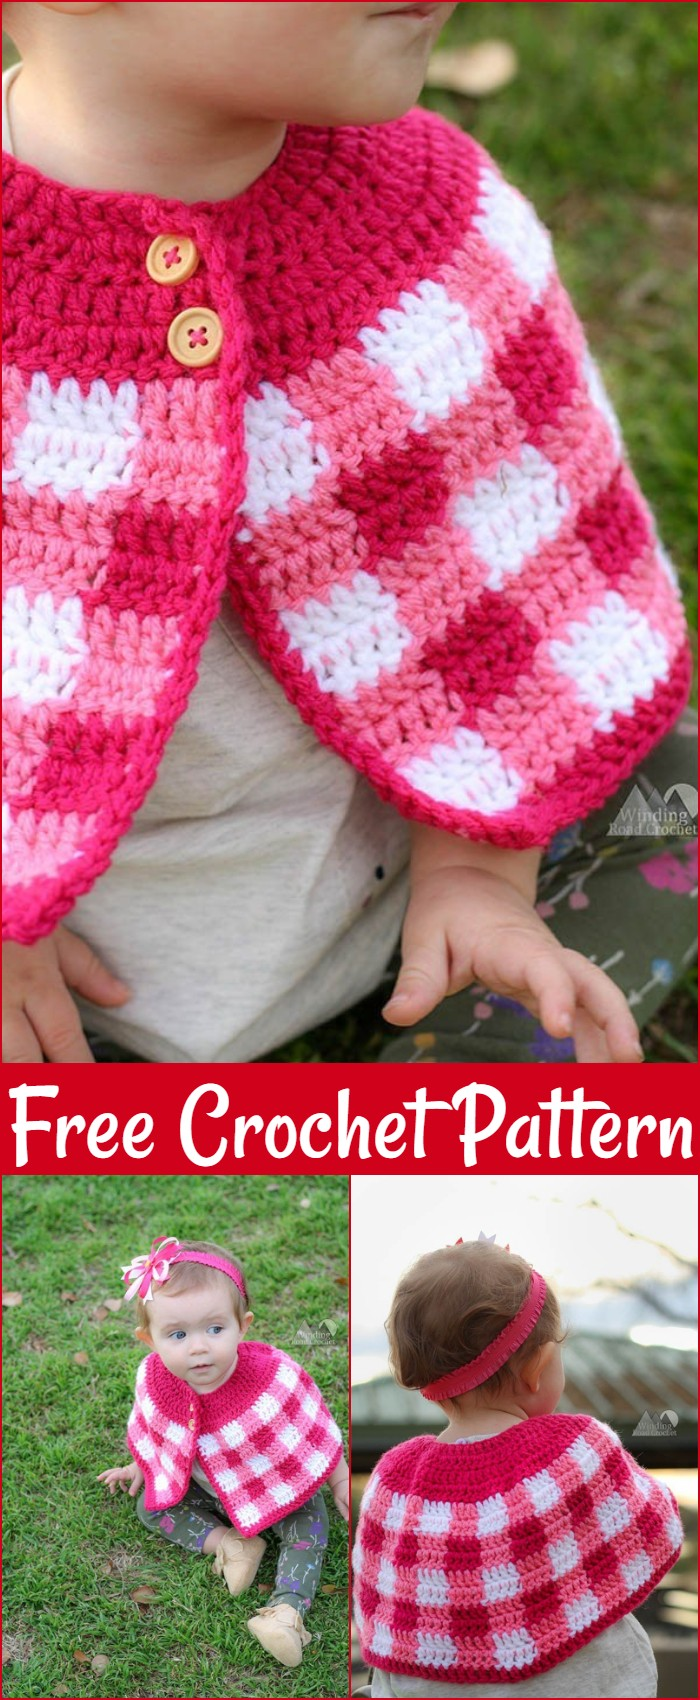 Free Crochet Plaid Cape With Baby And Girl Sizes